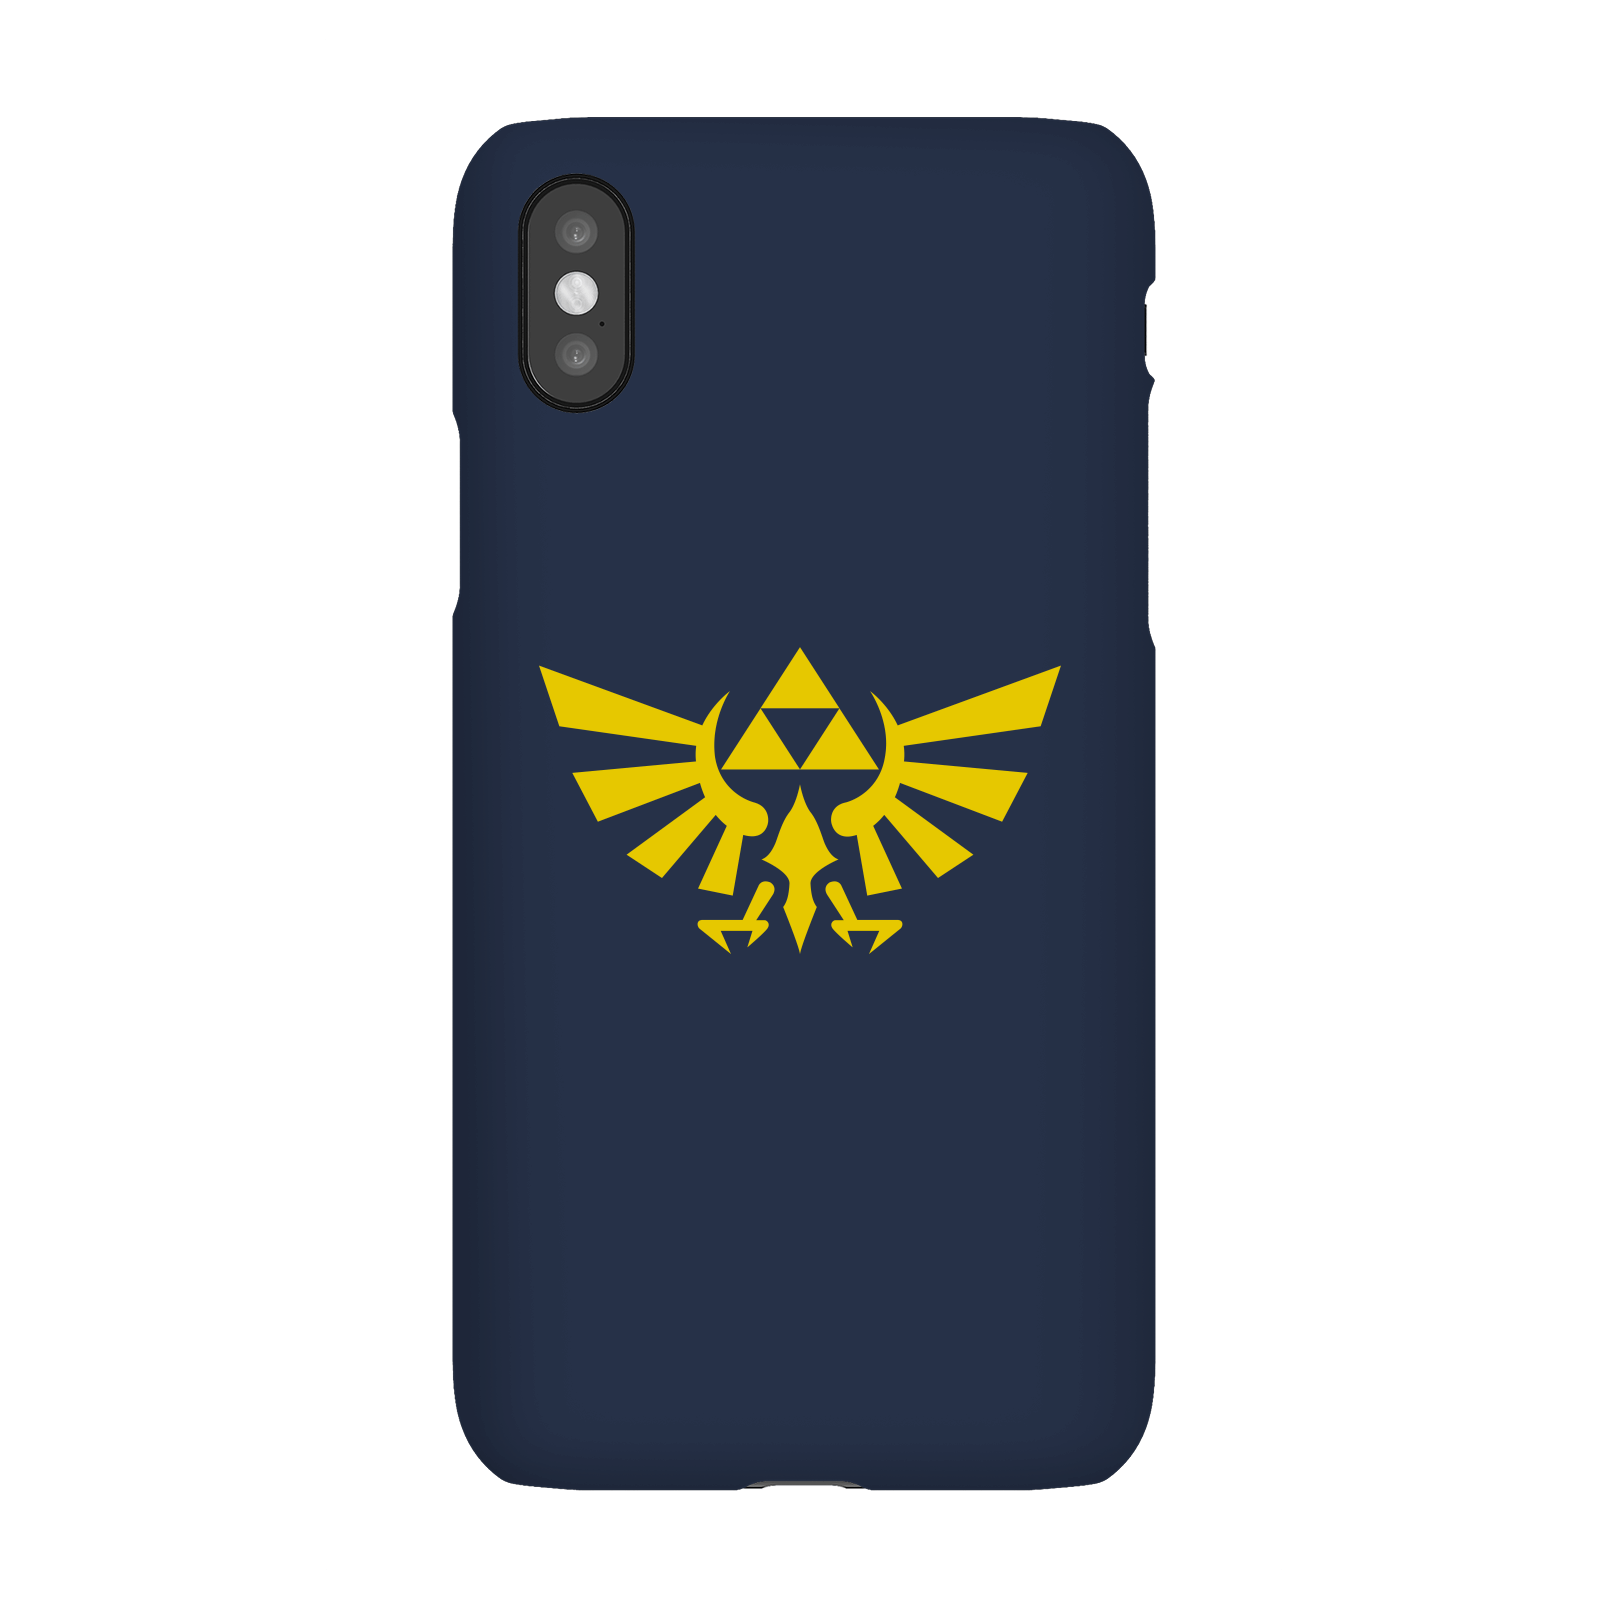 Nintendo The Legend Of Zelda Hyrule Phone Case